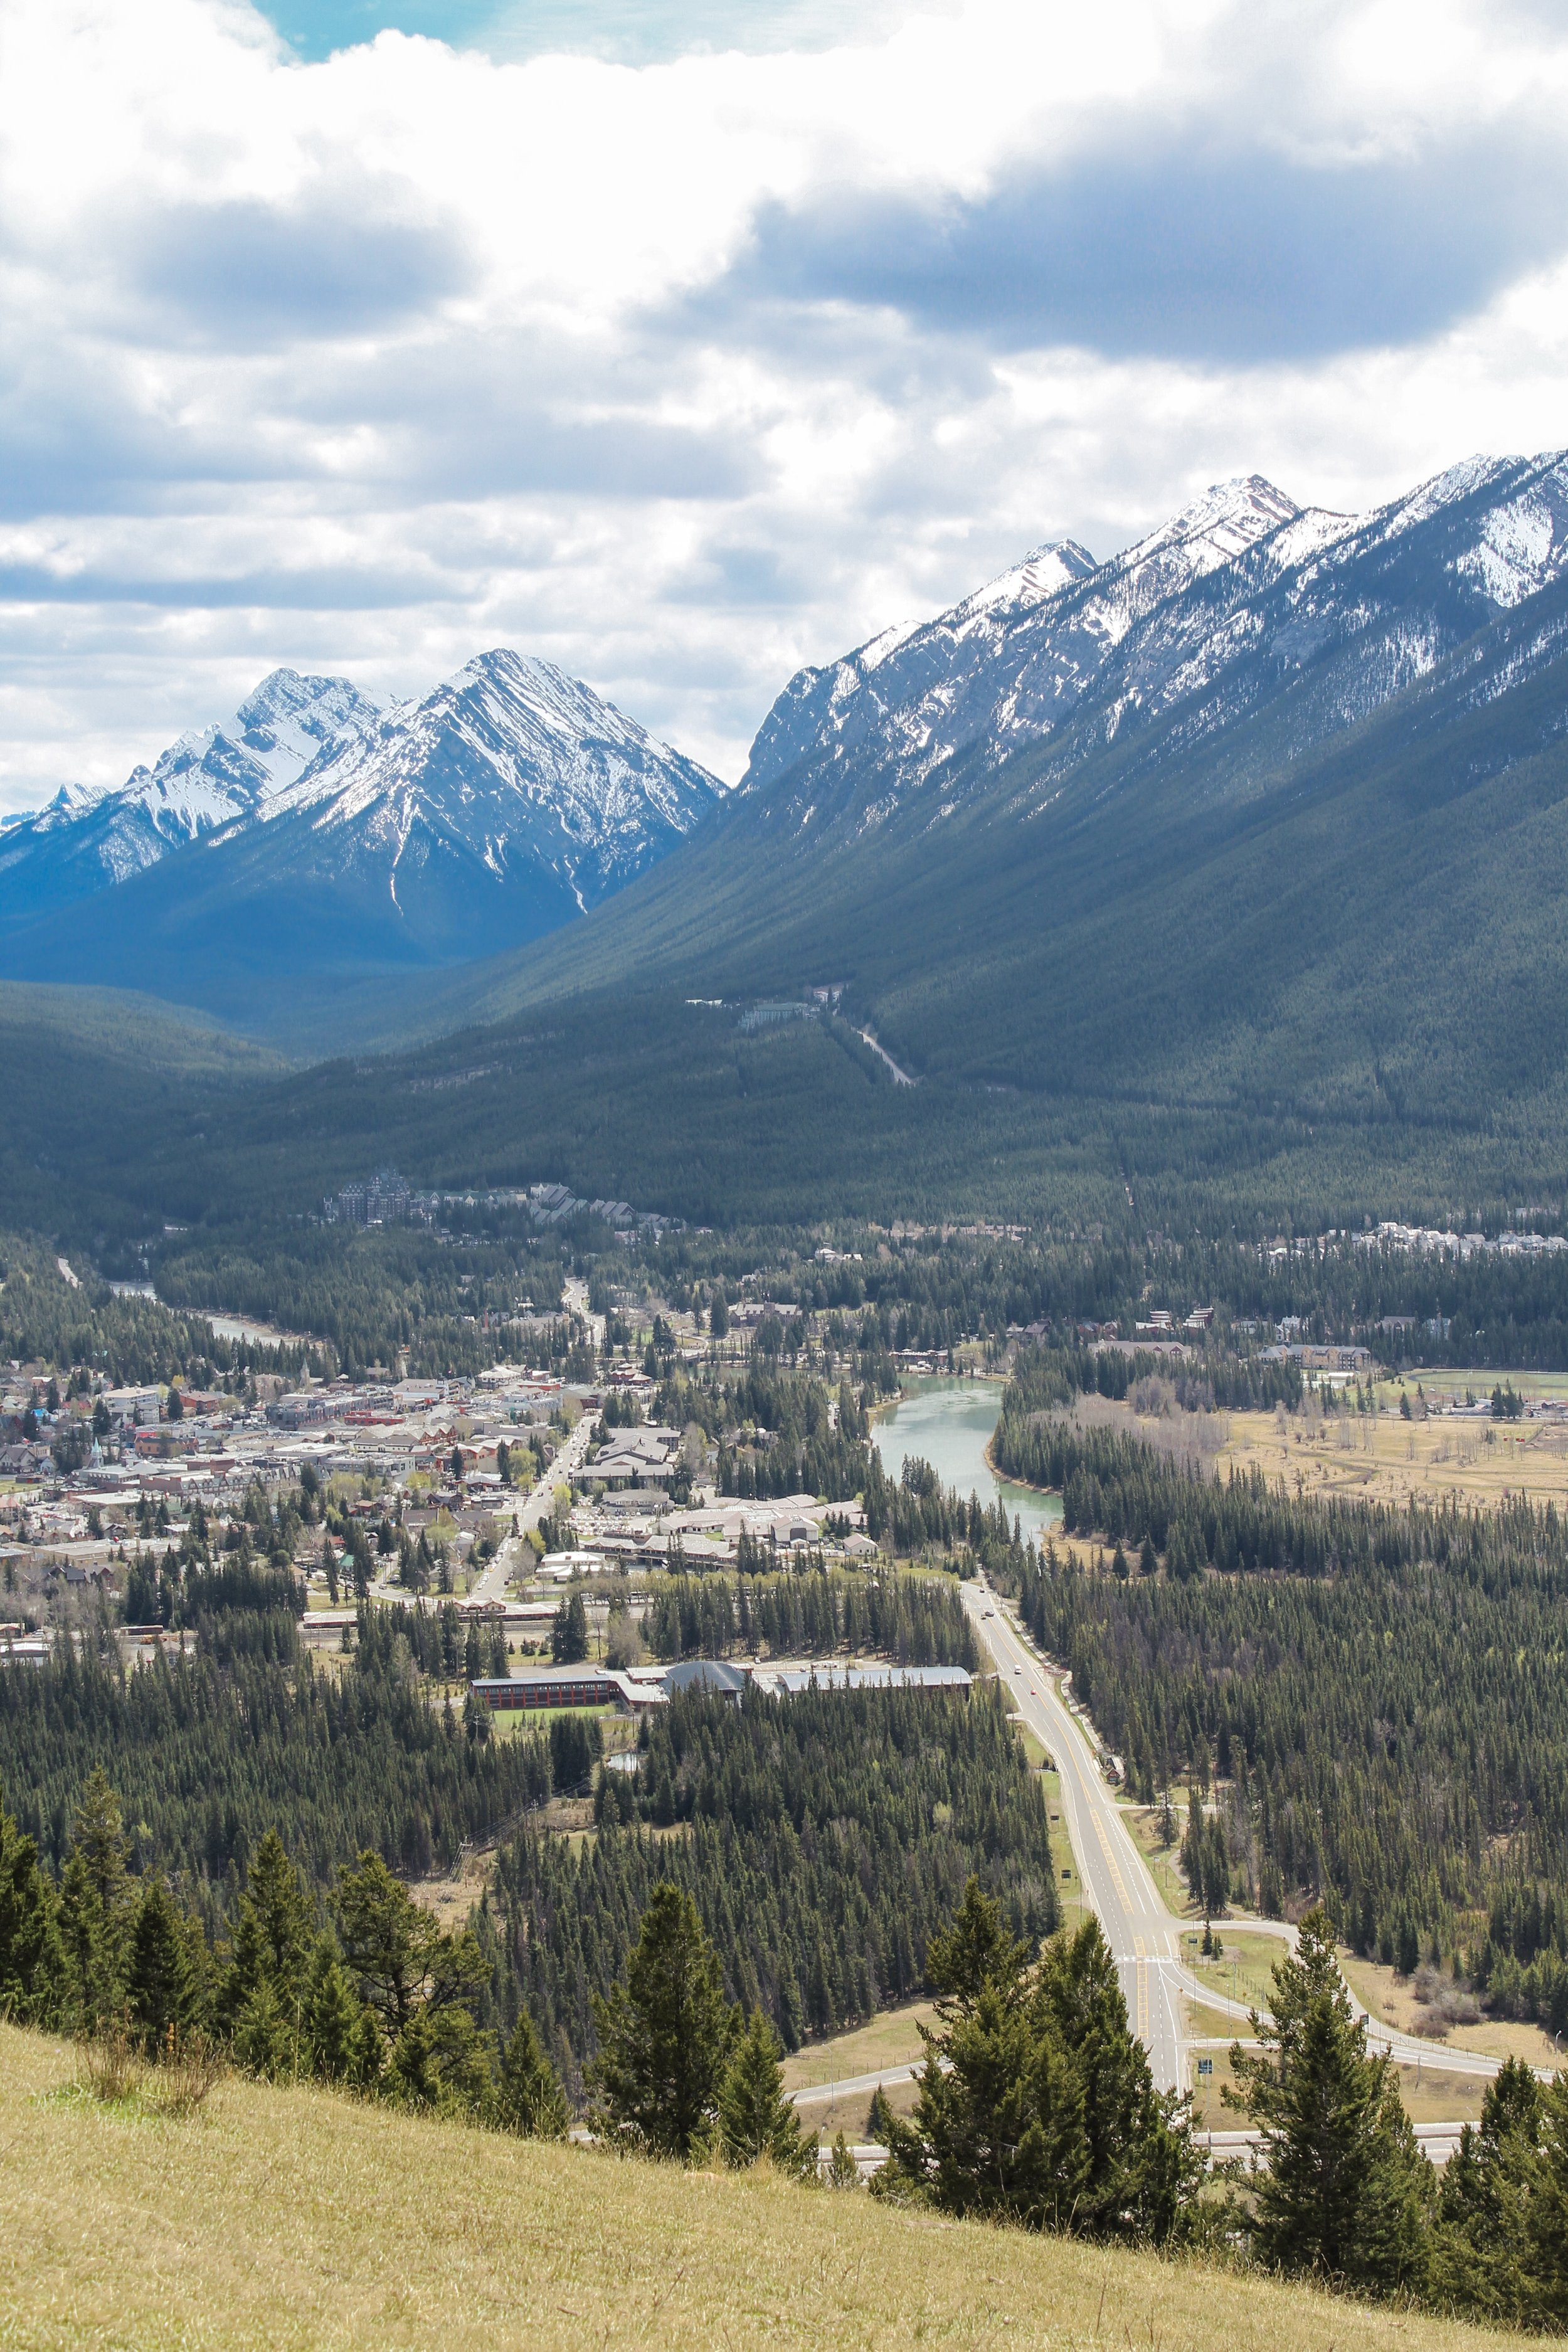 Banff town and the Bow River from the Mount Norquay viewpoint